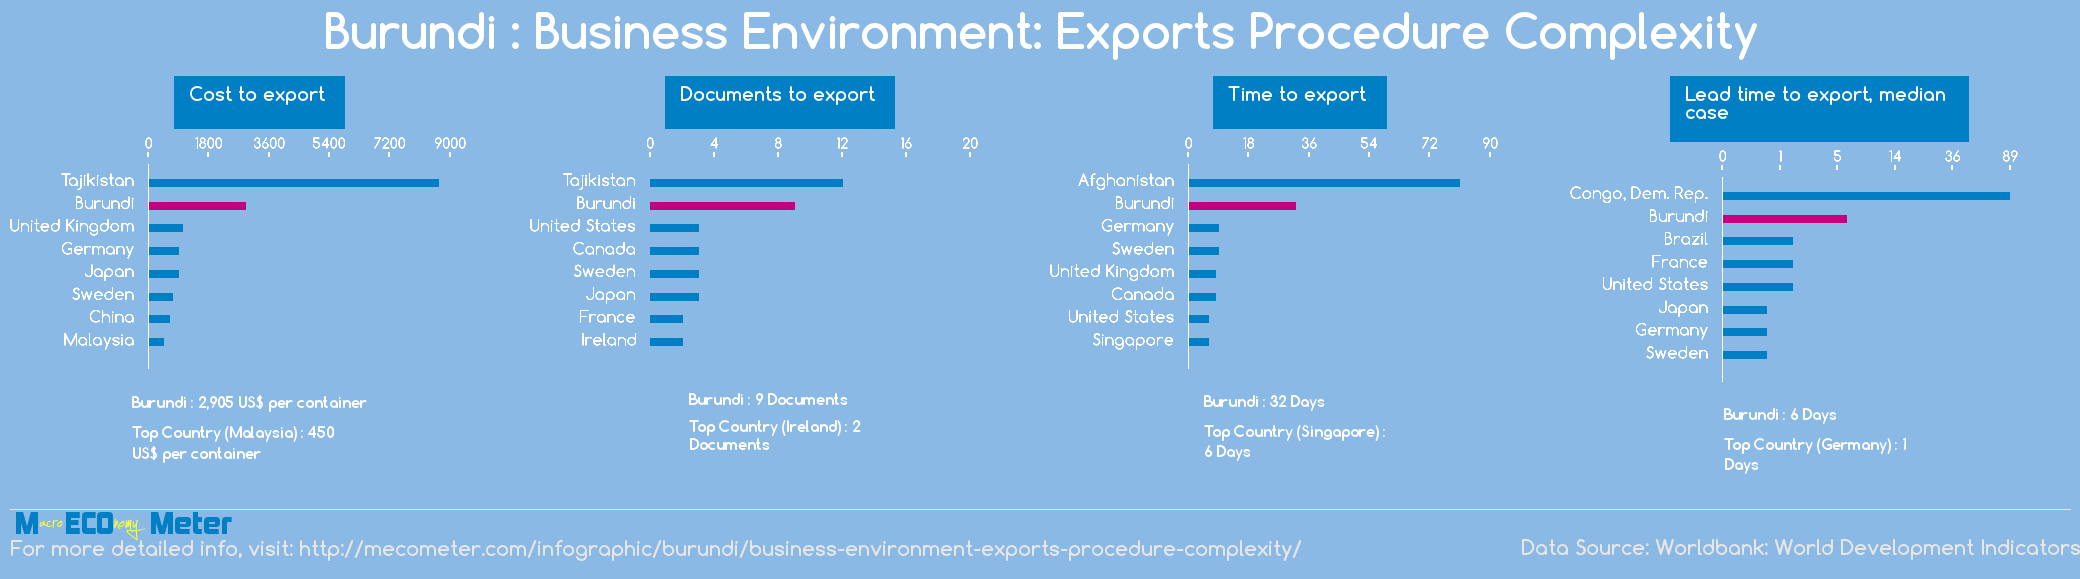 Burundi : Business Environment: Exports Procedure Complexity